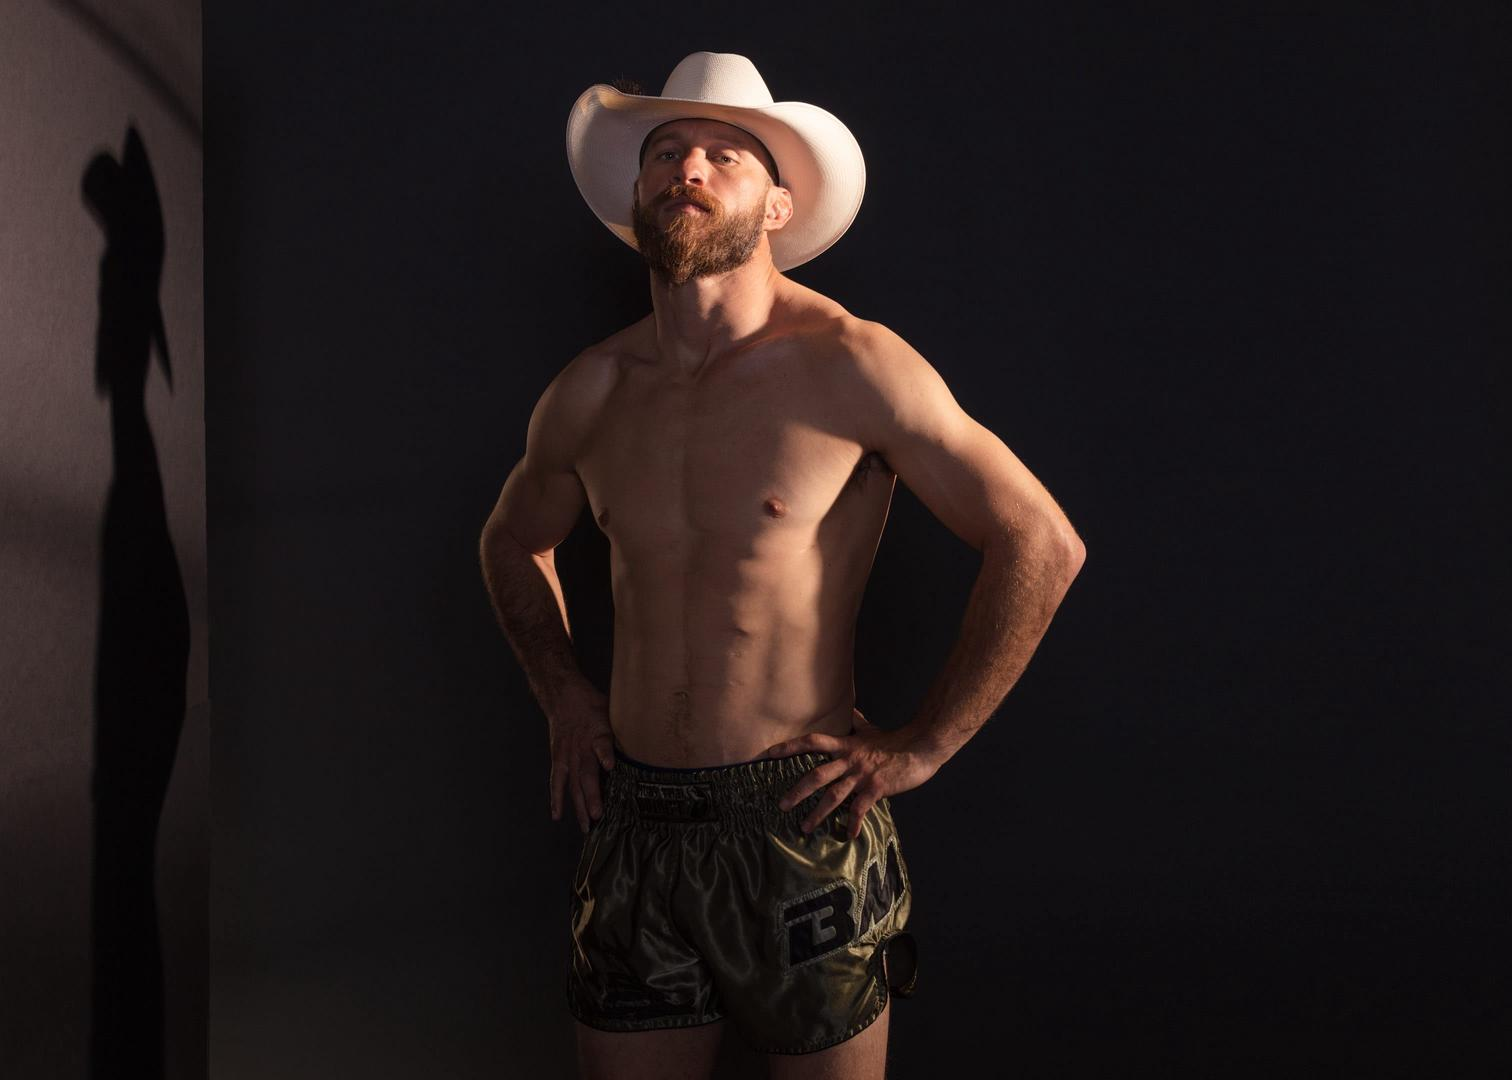 <p><strong>3. </strong><em>ESPN: UFC 246: The Painful Stories Behind Cowboy Cerrone's Injuries </em></p>